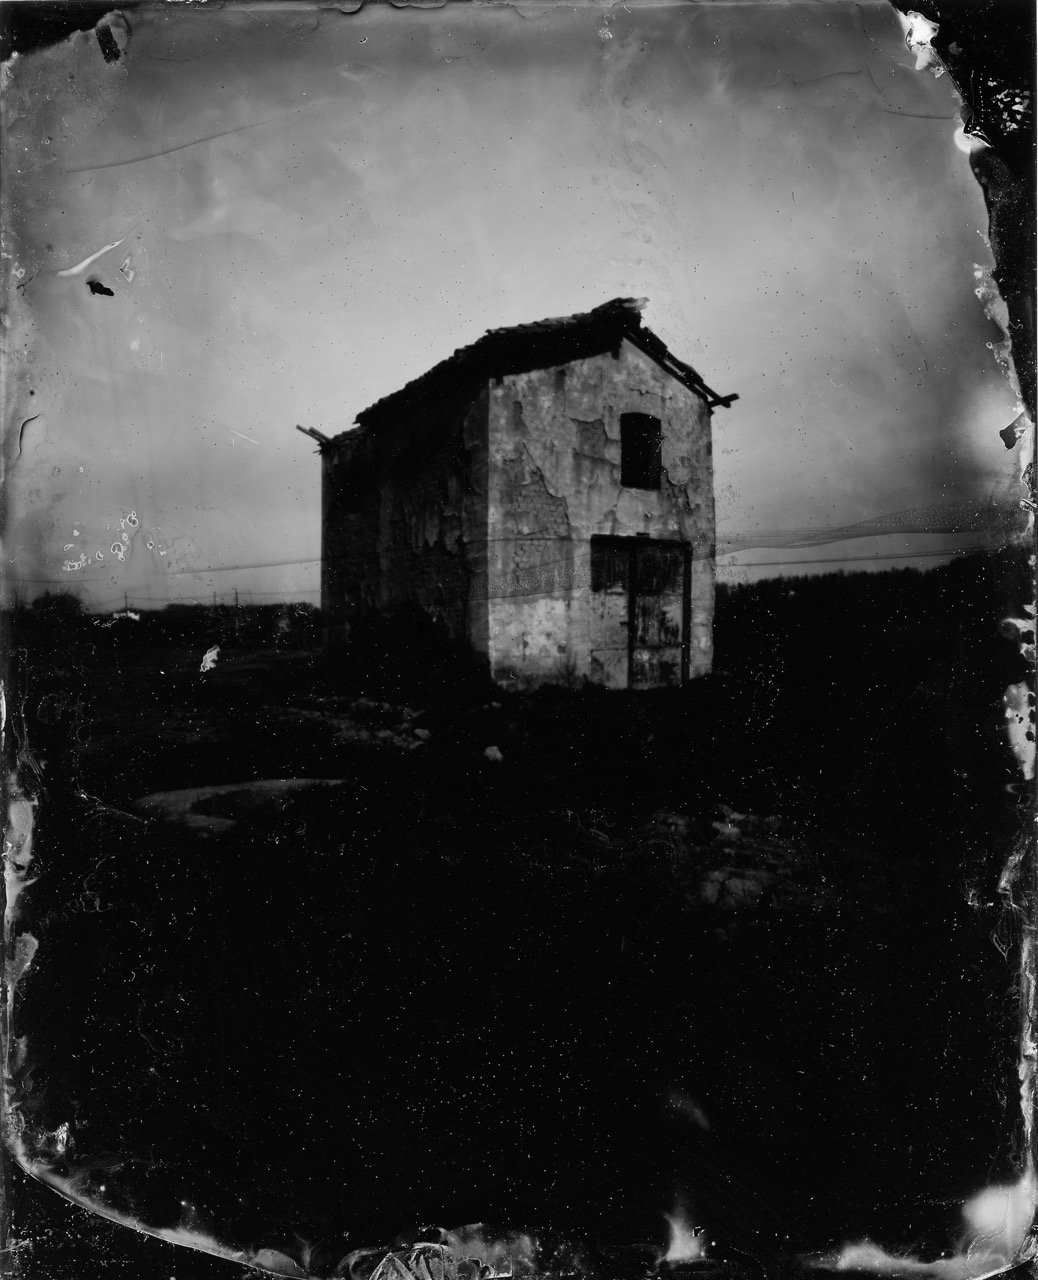 House, Leonardo Pinhole Camera, Wetplate Collodion on black glass, ©Joanna Epstein